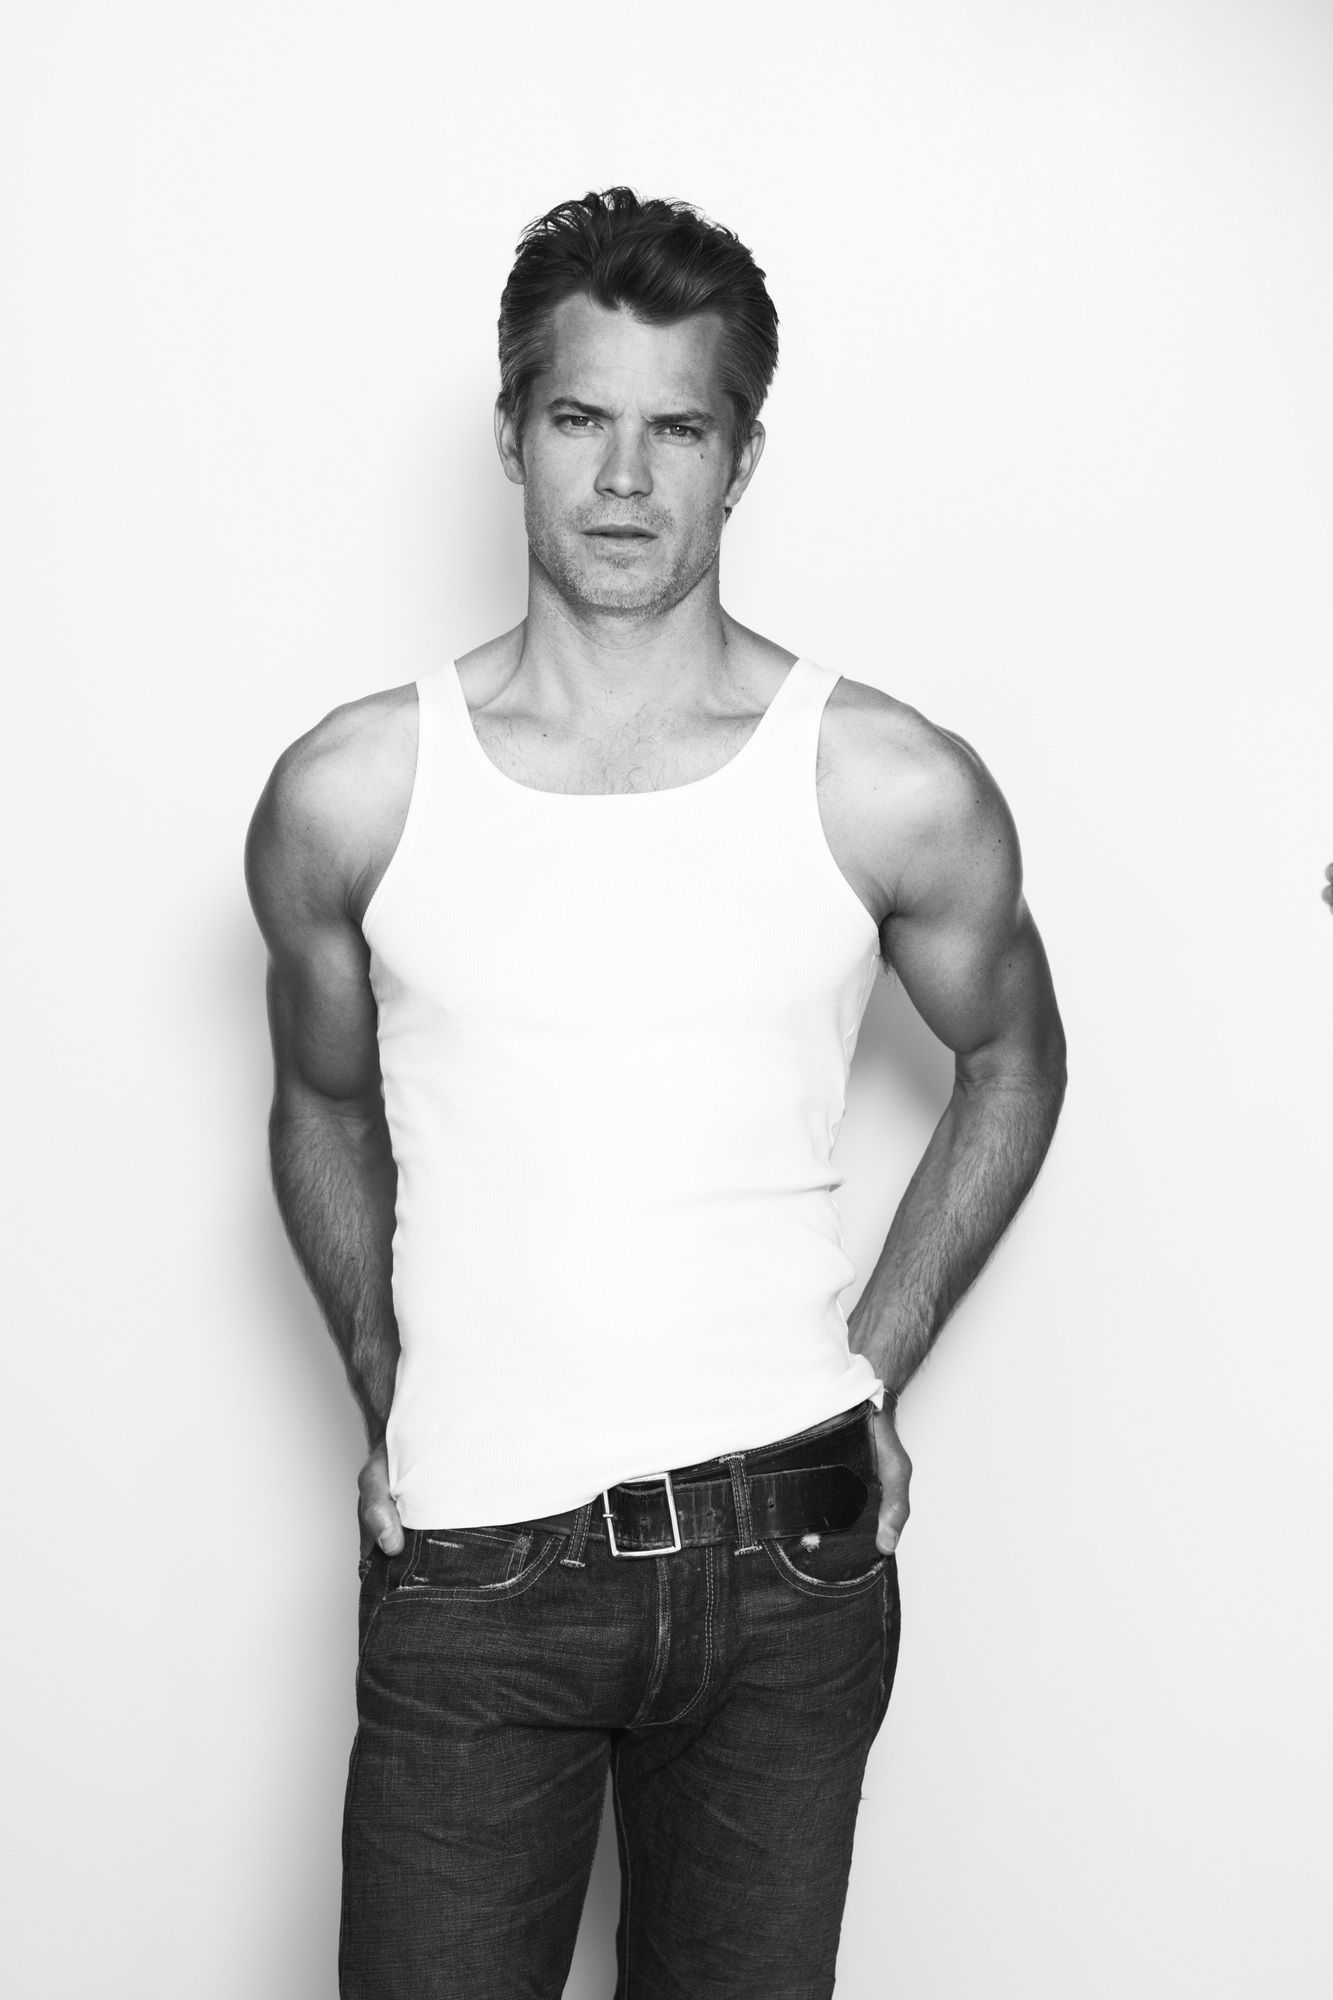 timothy olyphant gotimothy olyphant 2016, timothy olyphant height, timothy olyphant 2017, timothy olyphant young, timothy olyphant conan, timothy olyphant wiki, timothy olyphant twitter, timothy olyphant jimmy fallon, timothy olyphant billy bob thornton, timothy olyphant josh duhamel, timothy olyphant scream 2, timothy olyphant mother, timothy olyphant imdb, timothy olyphant cinemorgue, timothy olyphant snowden, timothy olyphant bald, timothy olyphant news, timothy olyphant go, timothy olyphant salary, timothy olyphant brother